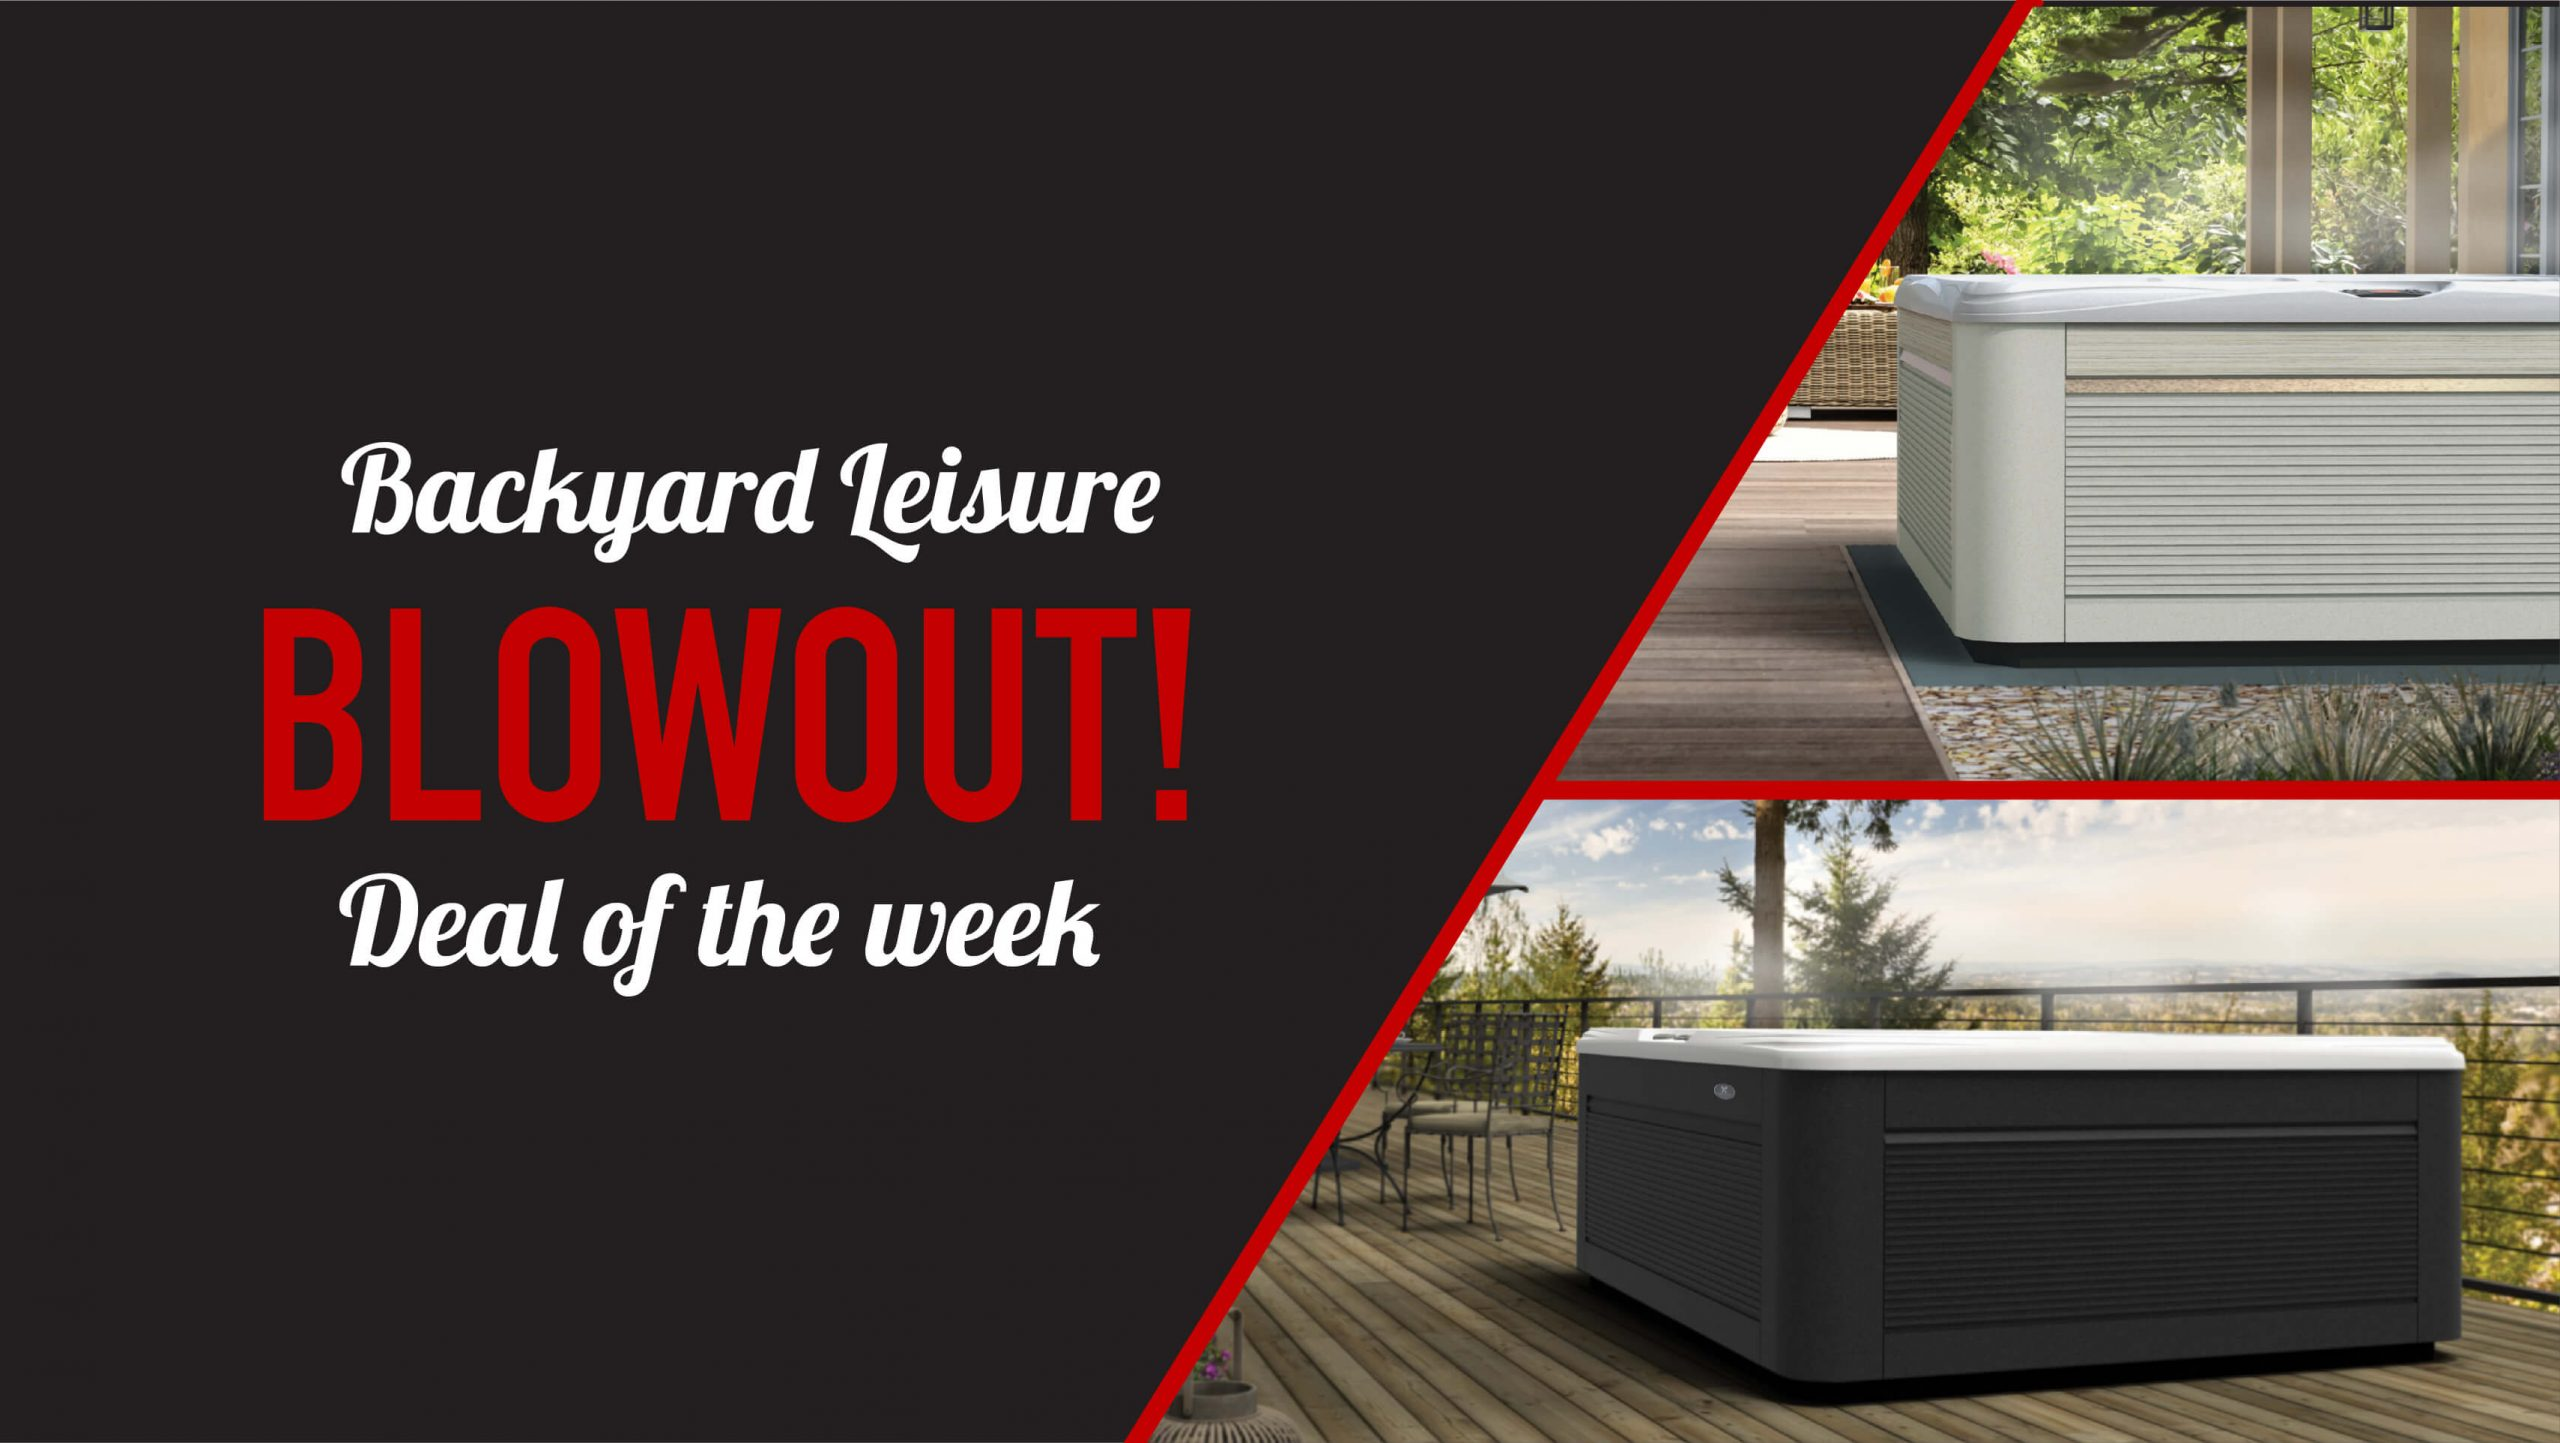 Hot Tub Blowout Deal Of The Week!!!